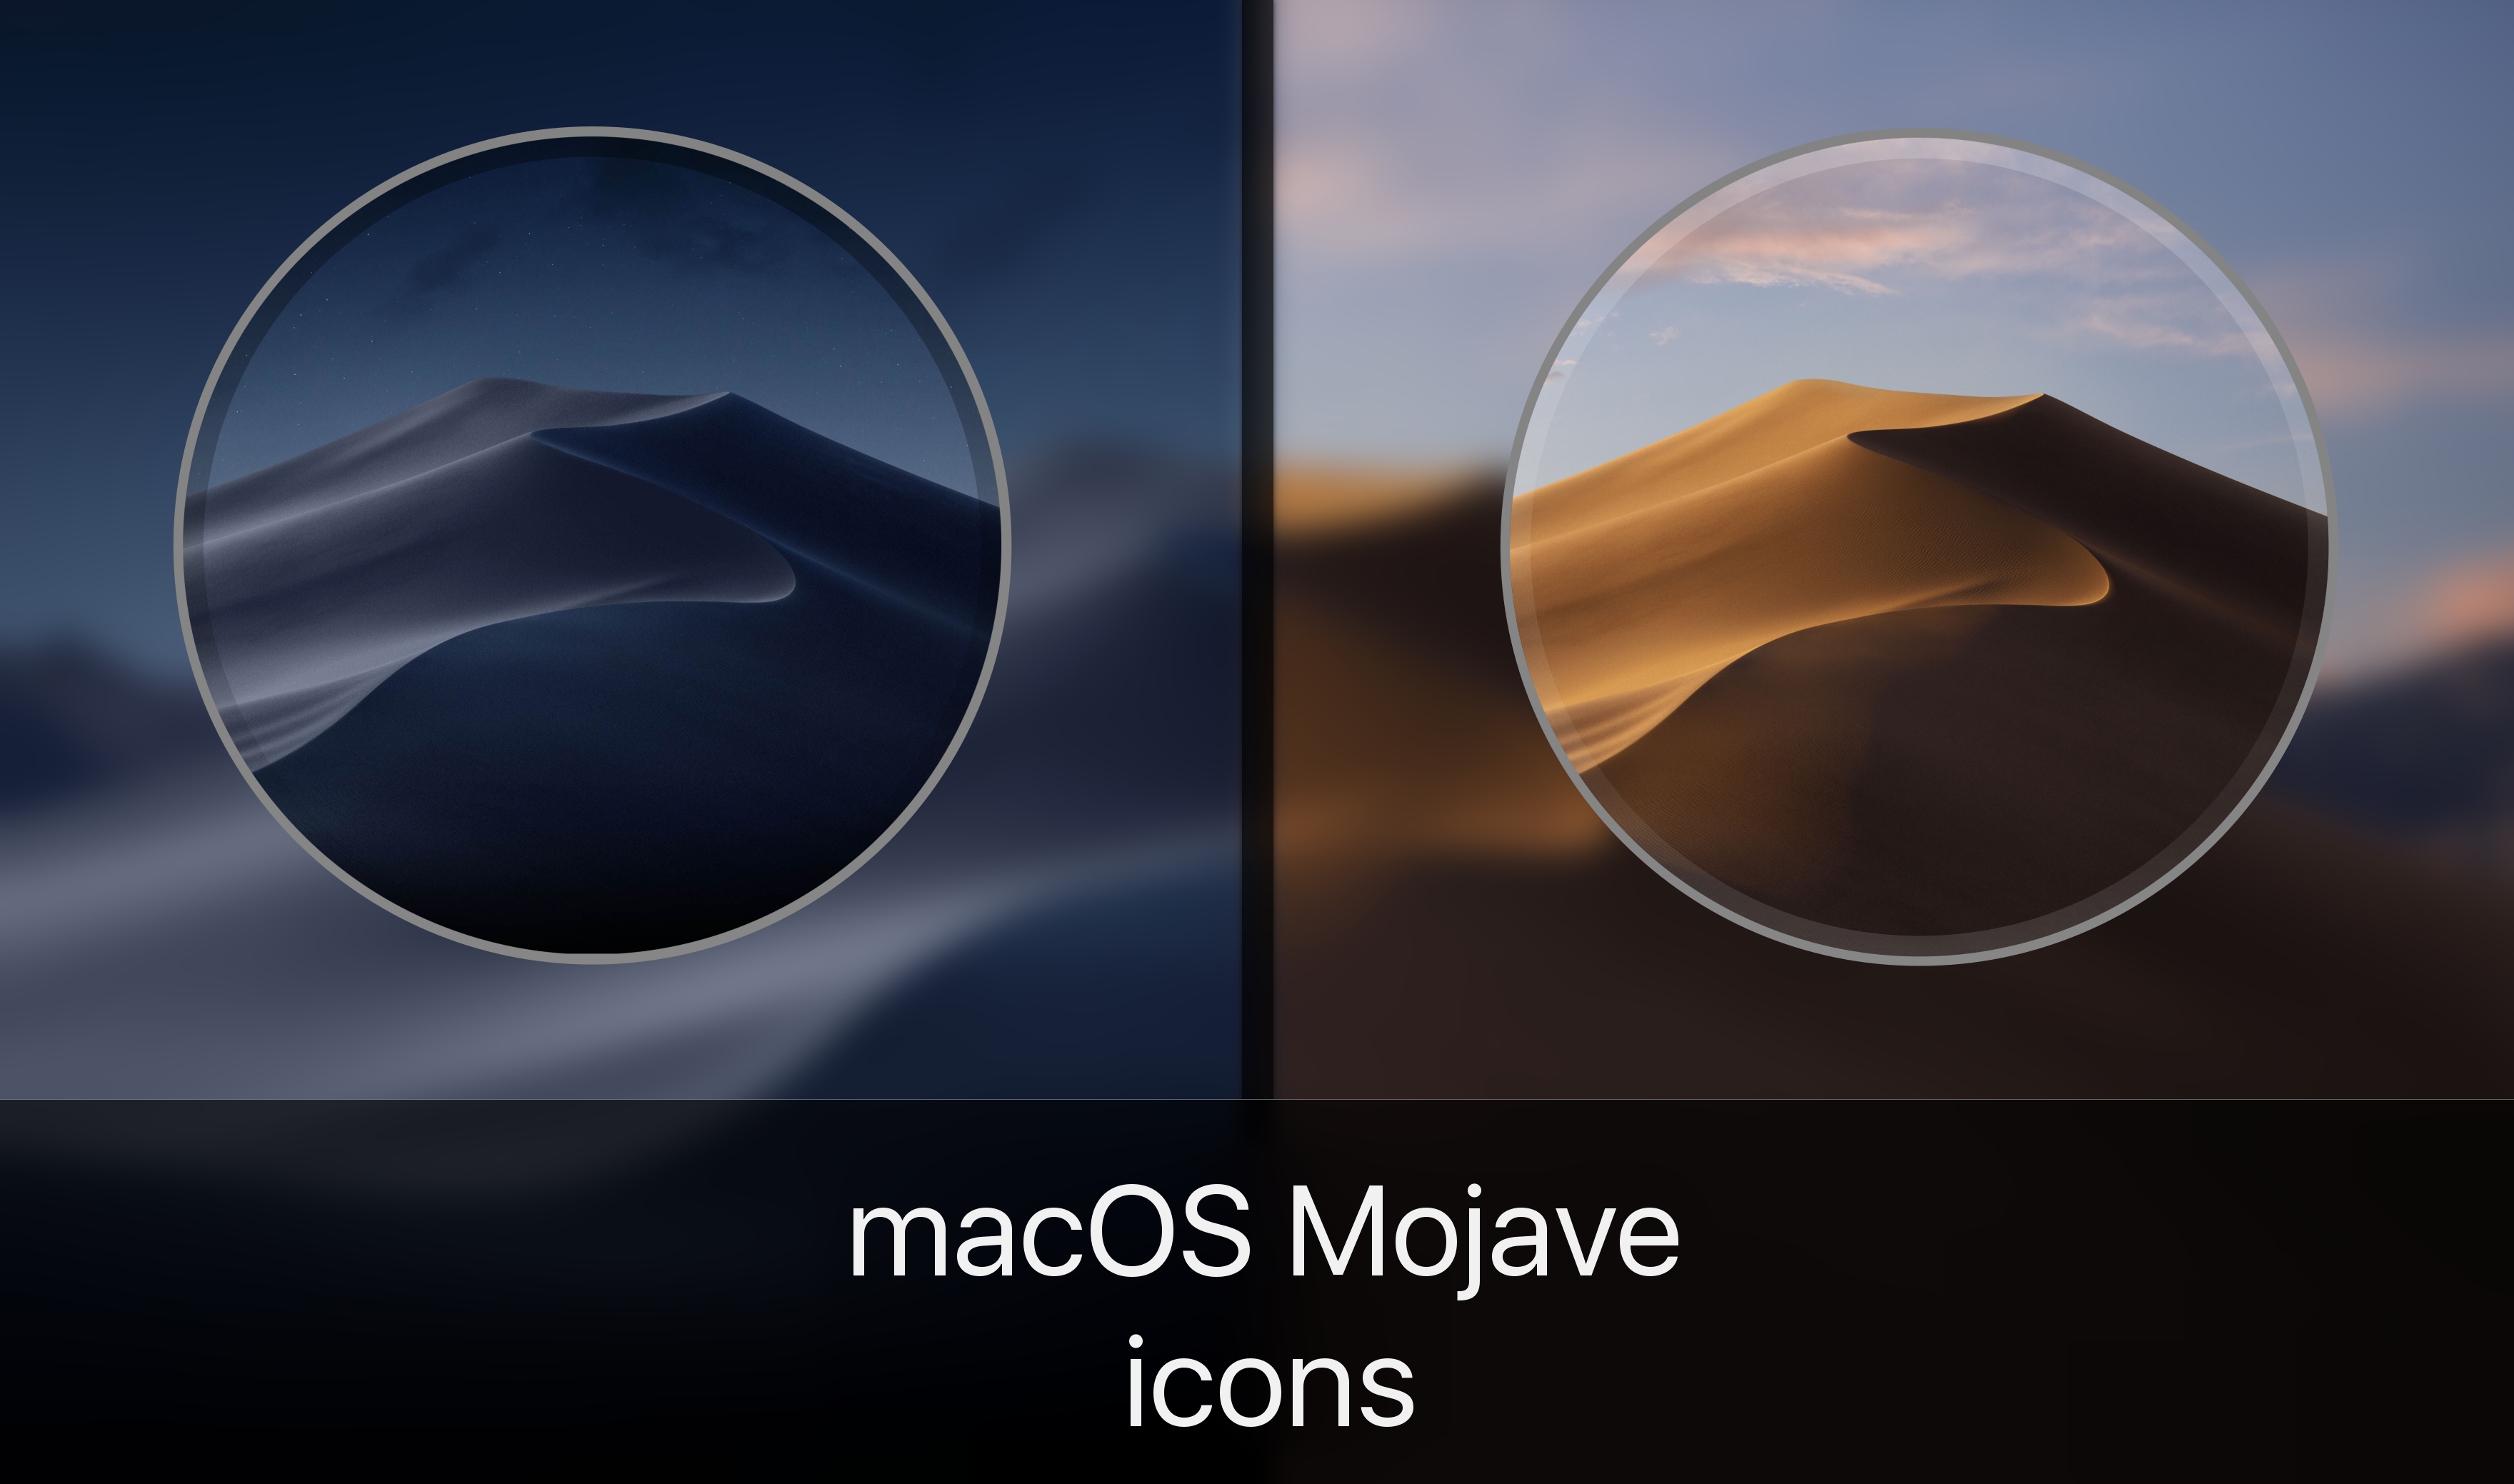 macOS Mojave icons by sunkotora on DeviantArt